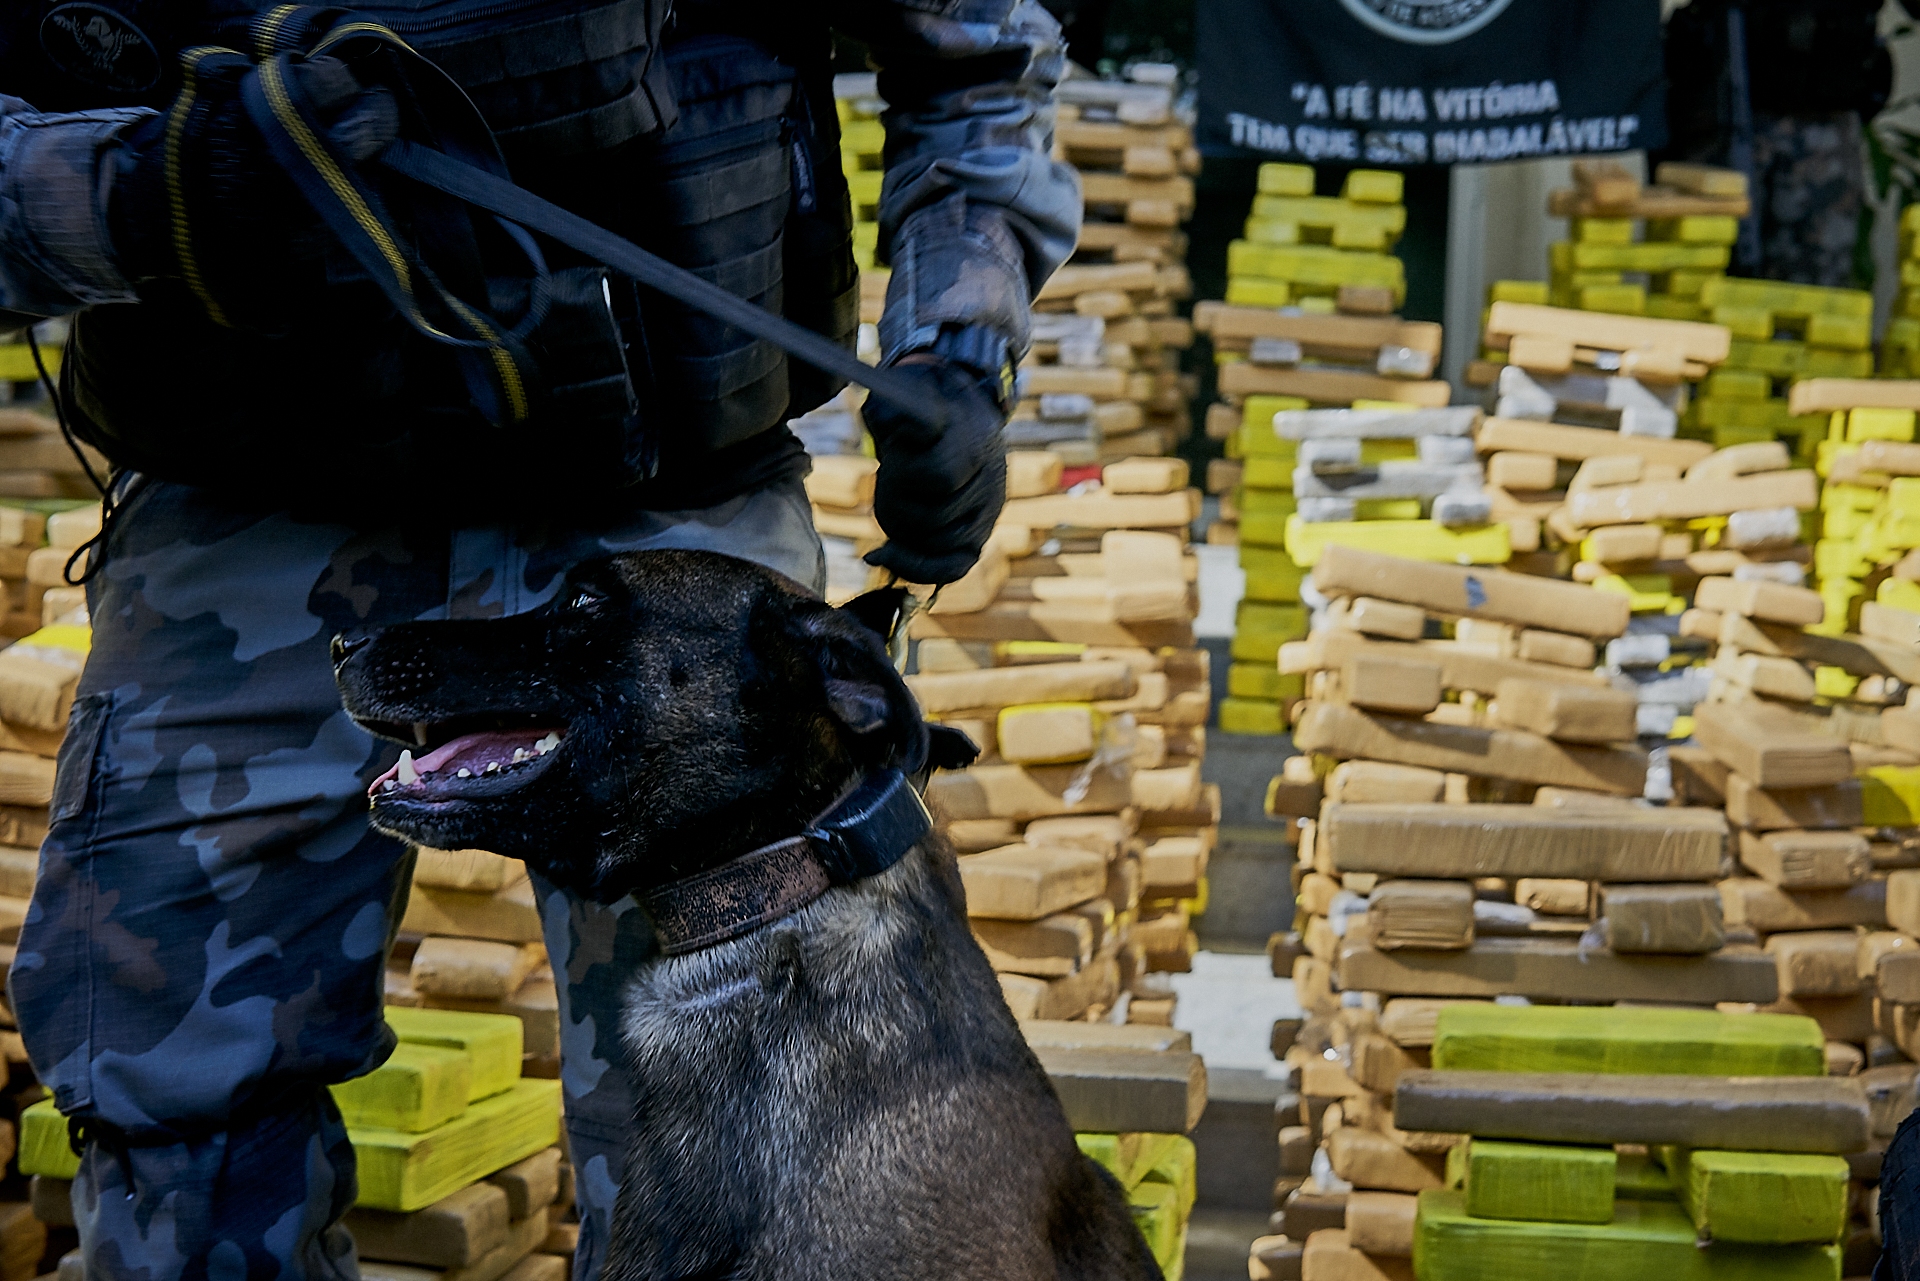 The majority of the drugs were found by Rio's Dog Battalion (Photo: C.H. Gardiner)